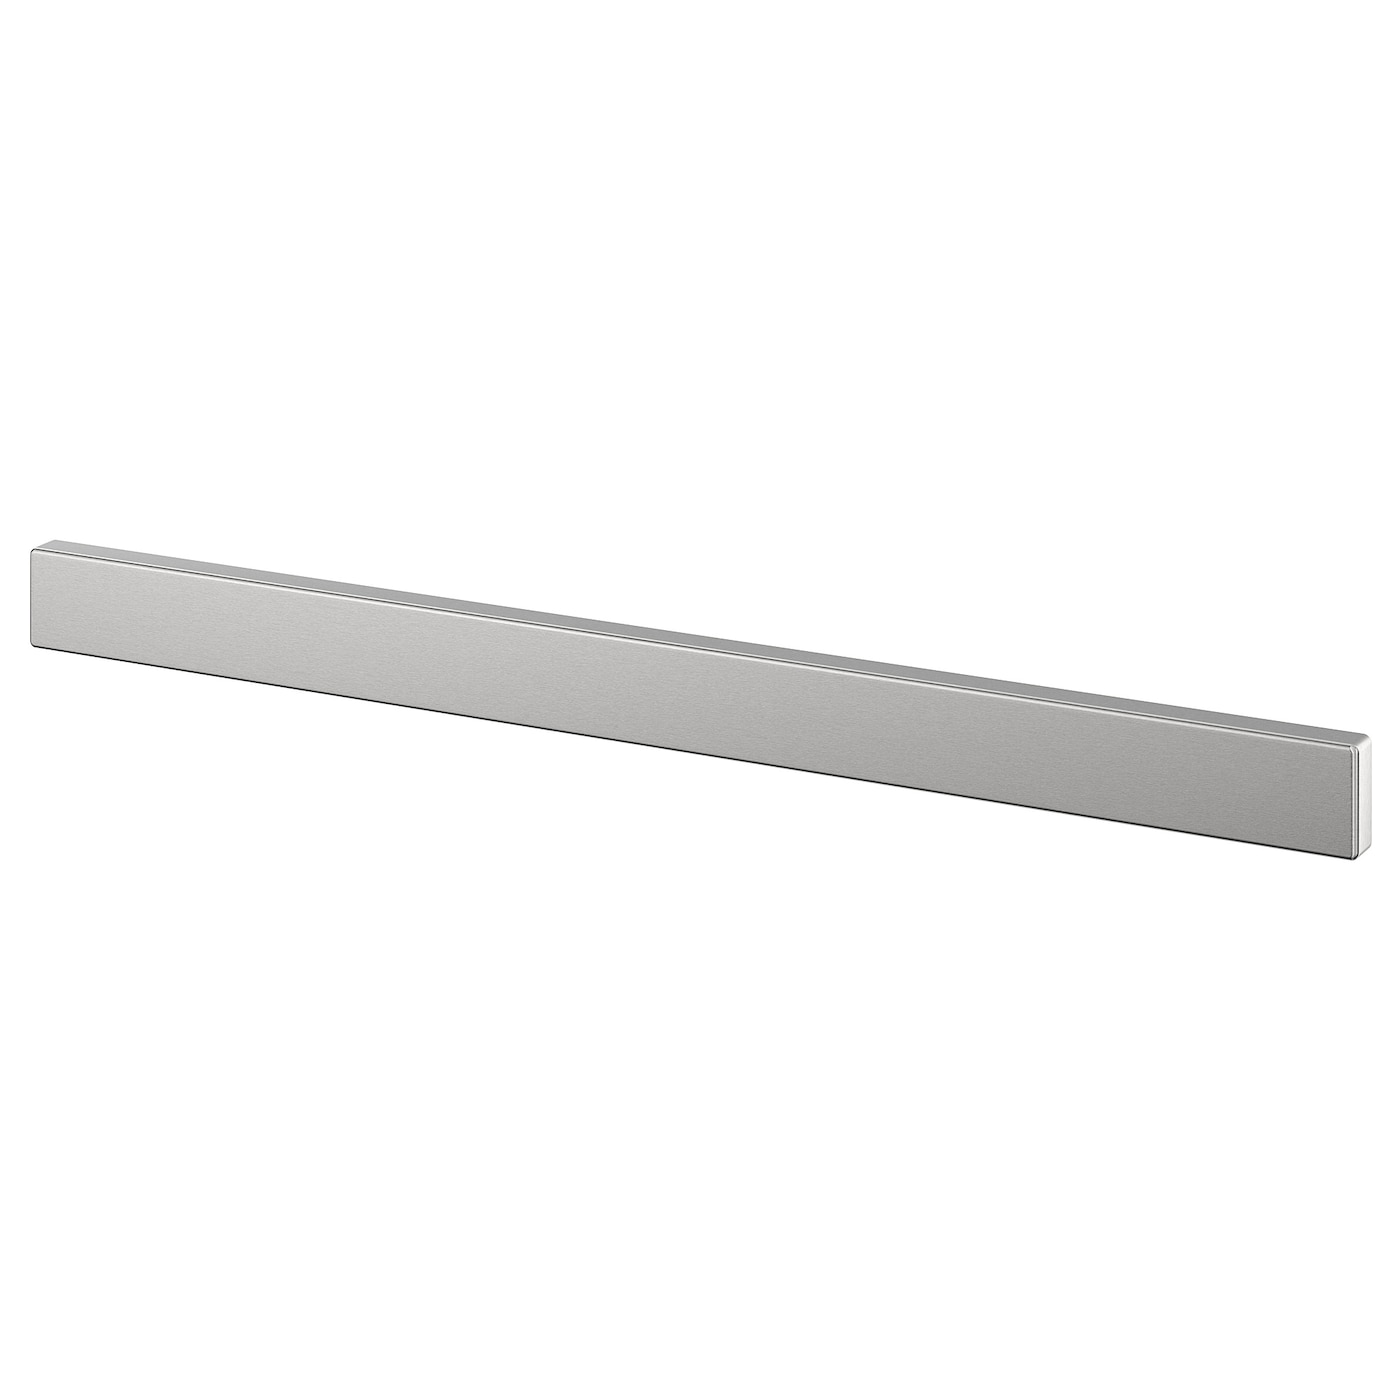 IKEA KUNGSFORS magnetic knife rack May also be used in high humidity areas.